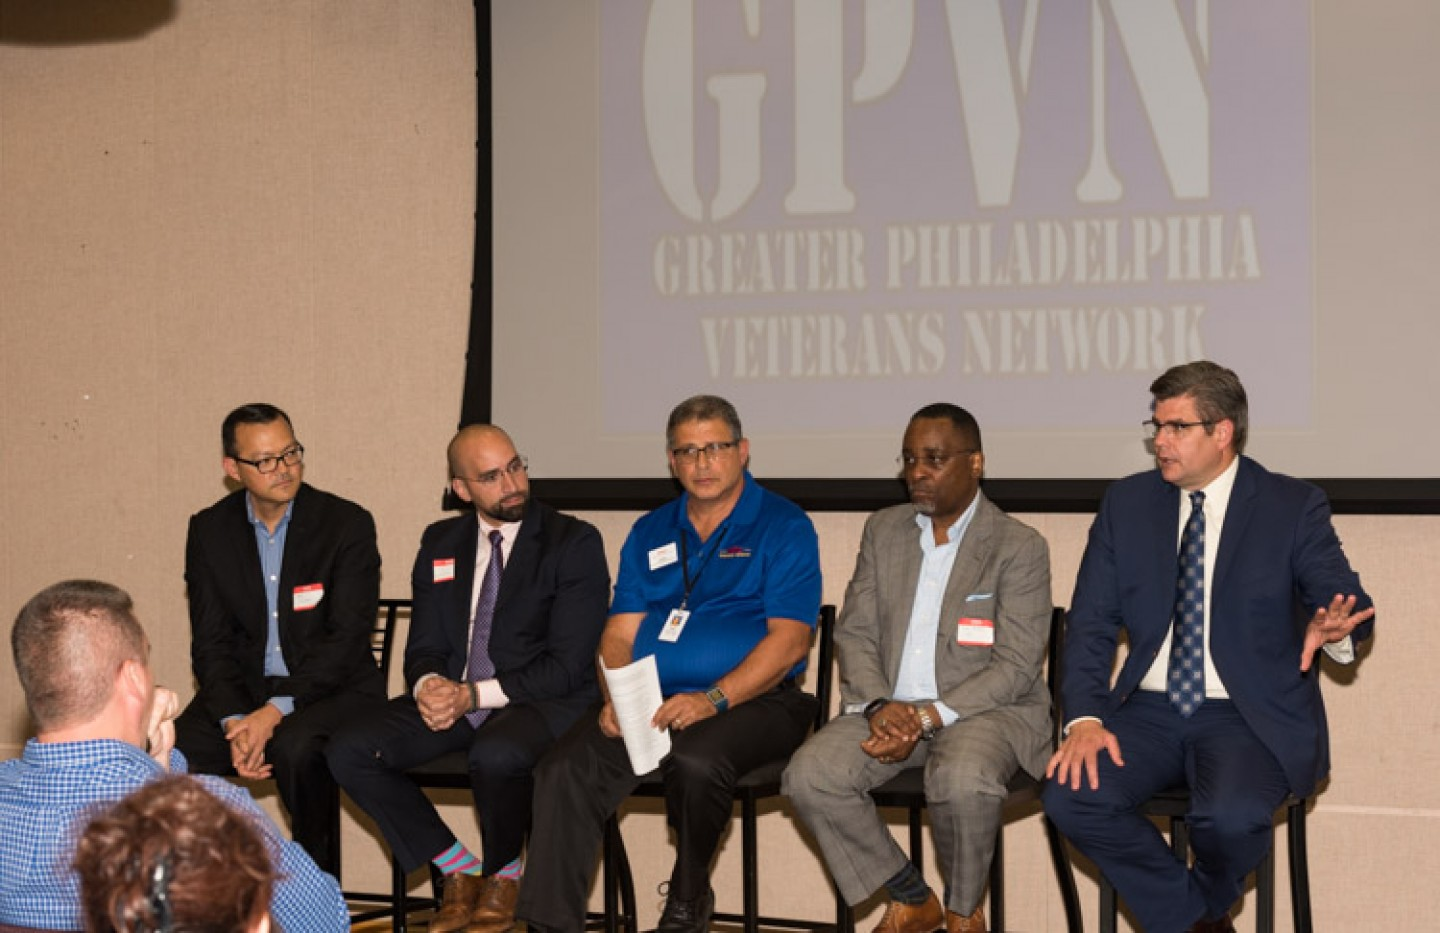 2017-05-19 - How to Hire a Veteran (122)-2